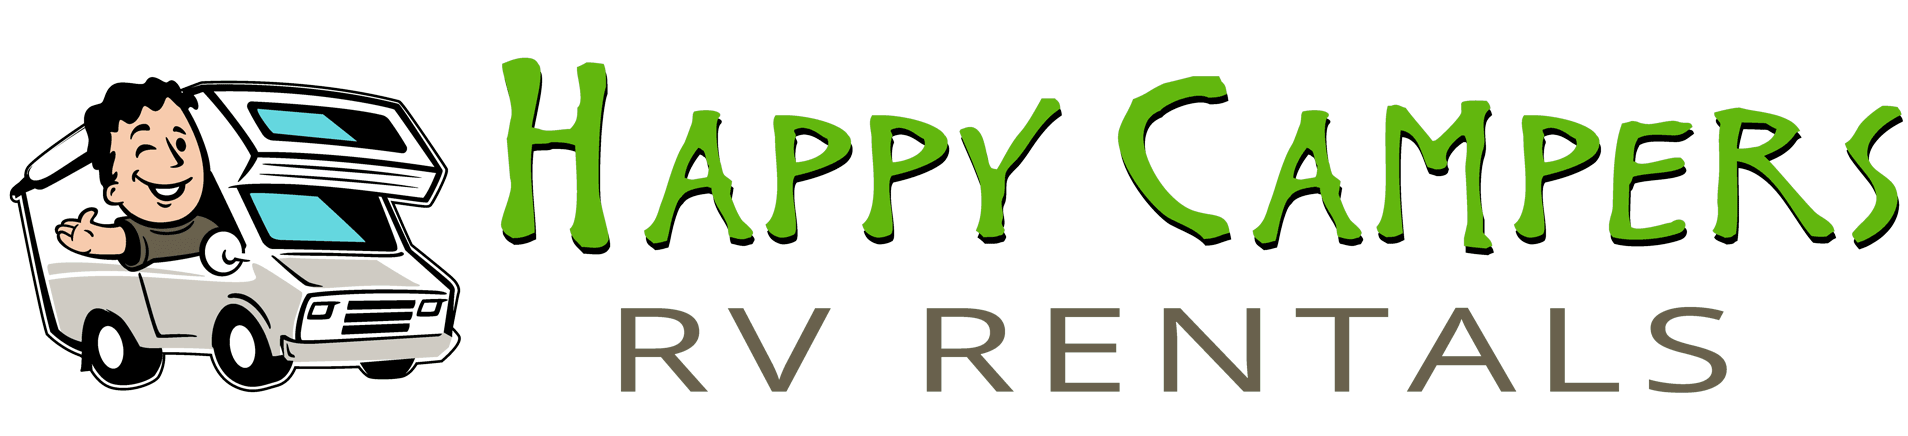 Happy Campers RV Rentals